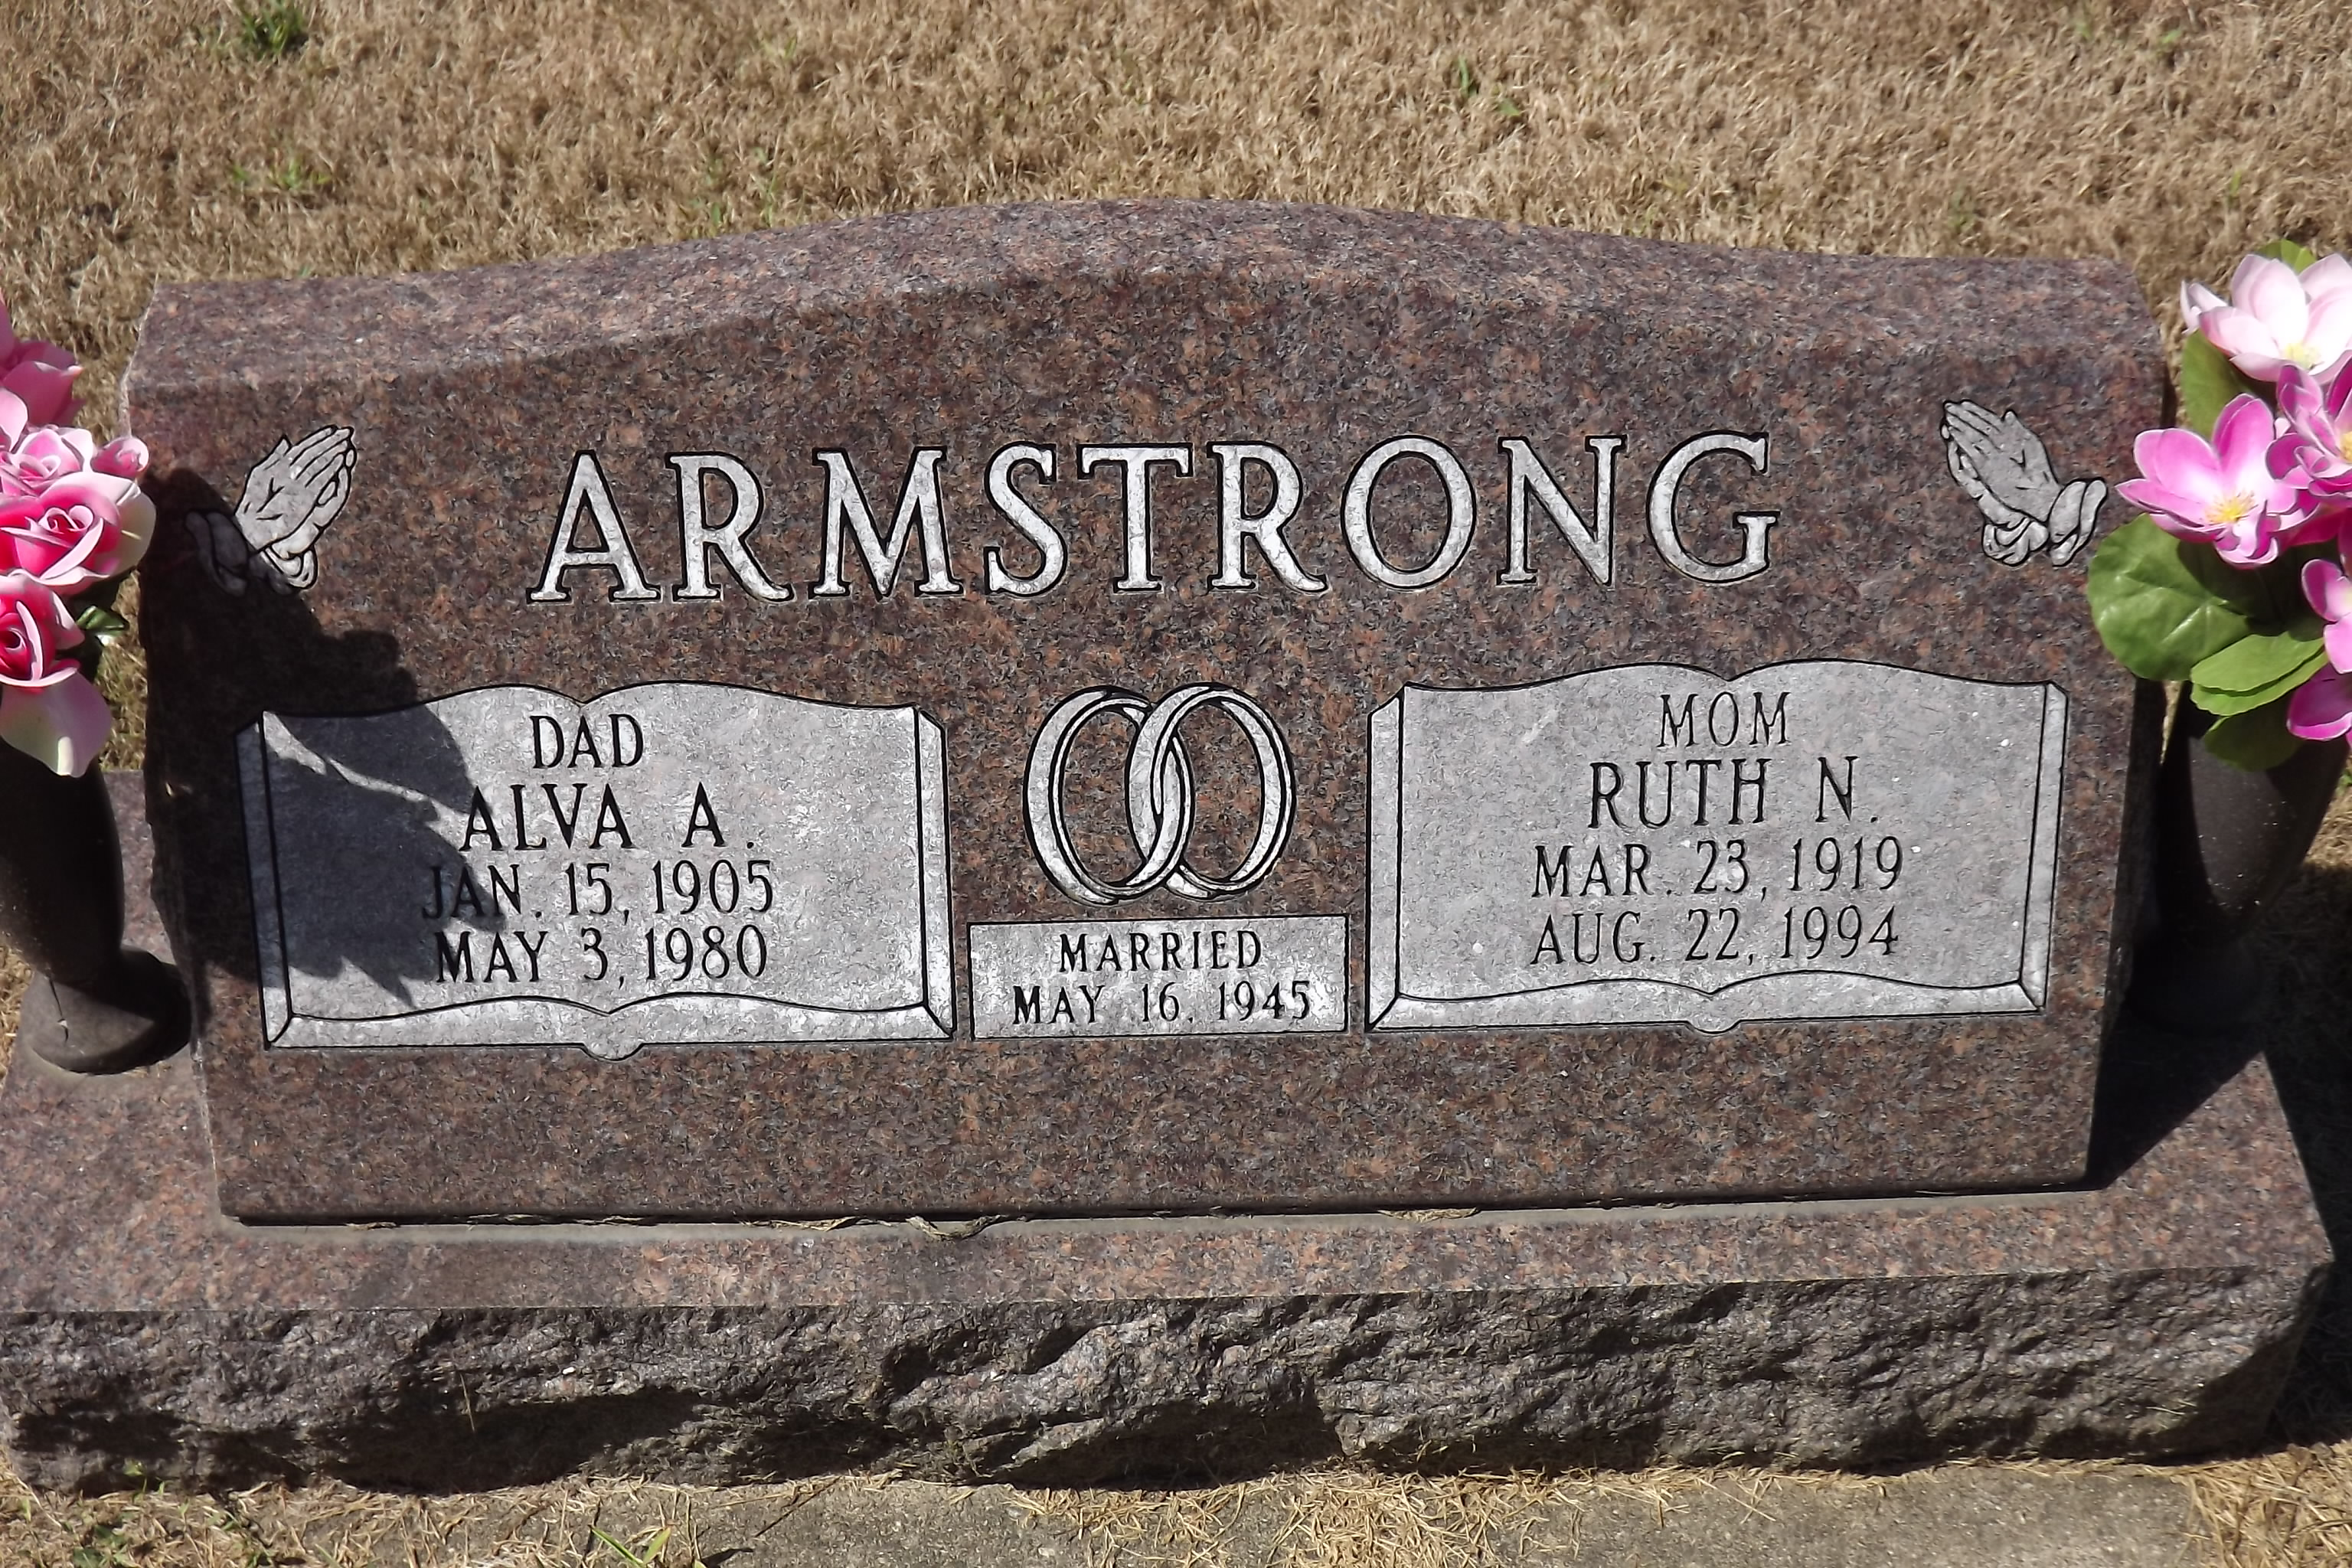 Ruth N <i>Keefer</i> Armstrong